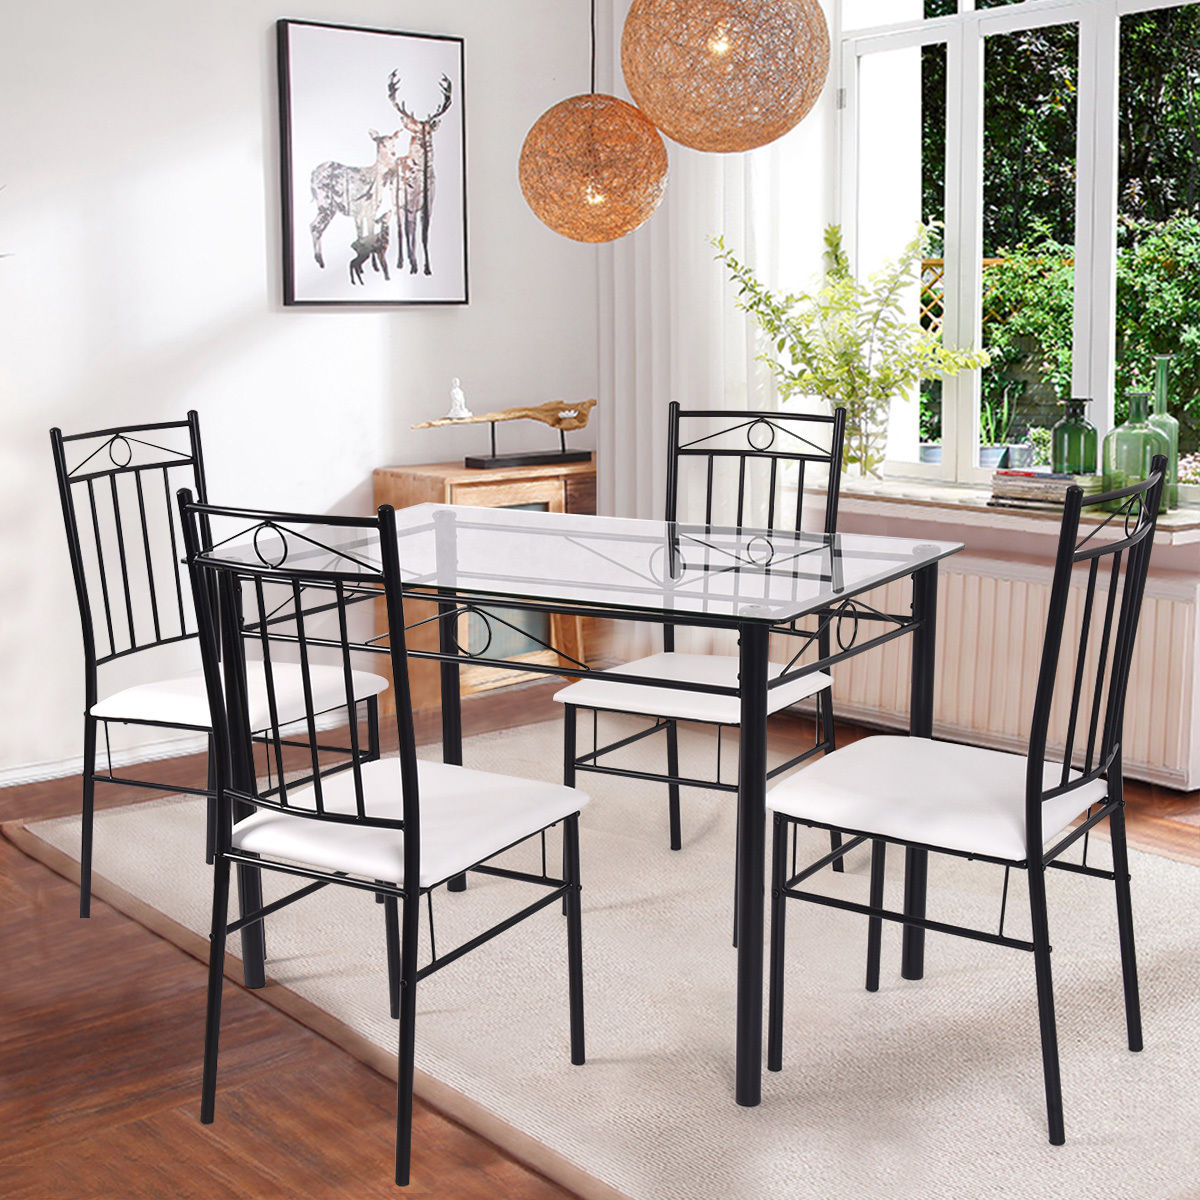 4 piece dining set rectangular dining costway piece dining set glass metal table and chairs kitchen breakfast furniture